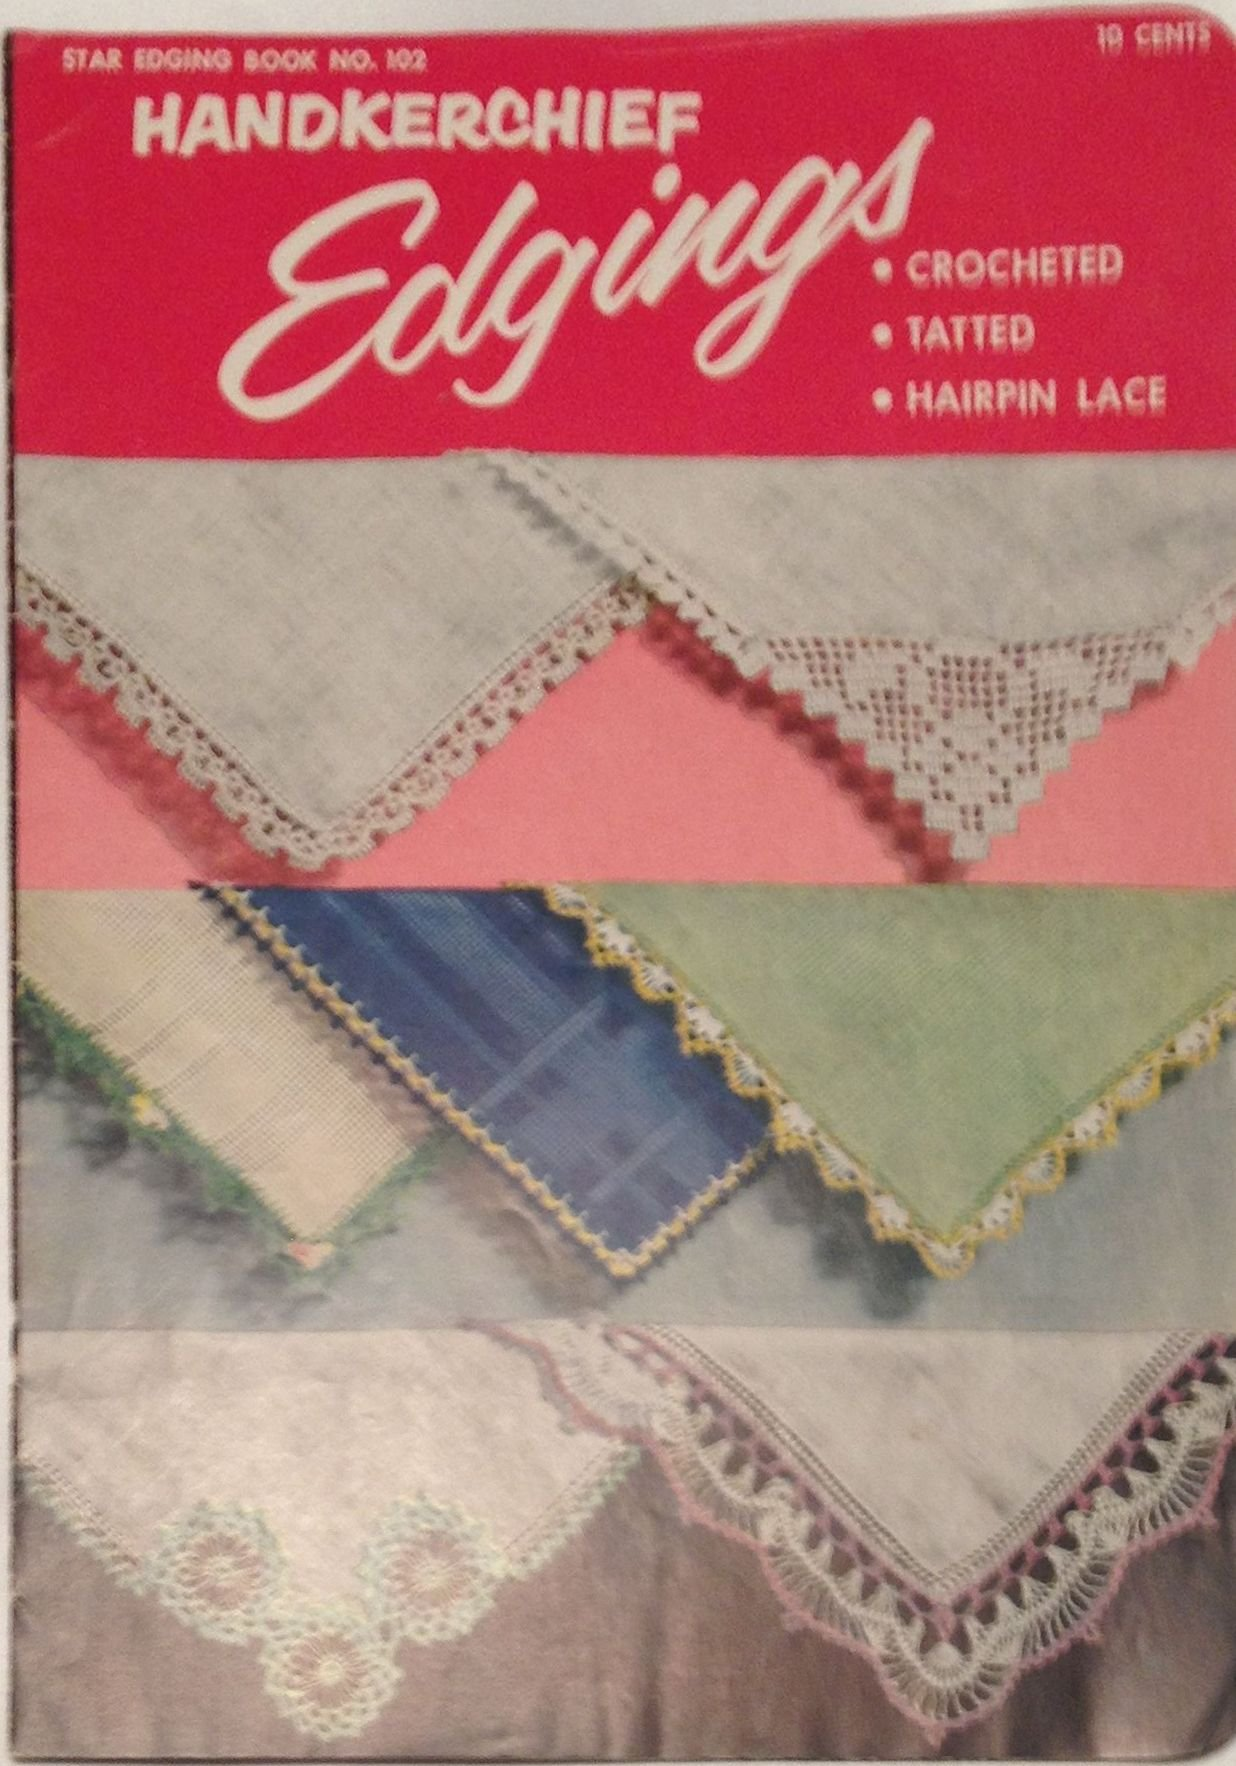 Handkerchief Edgings - Crocheted, Tatted, Hairpin Lace (Star Edging, Book No 102)